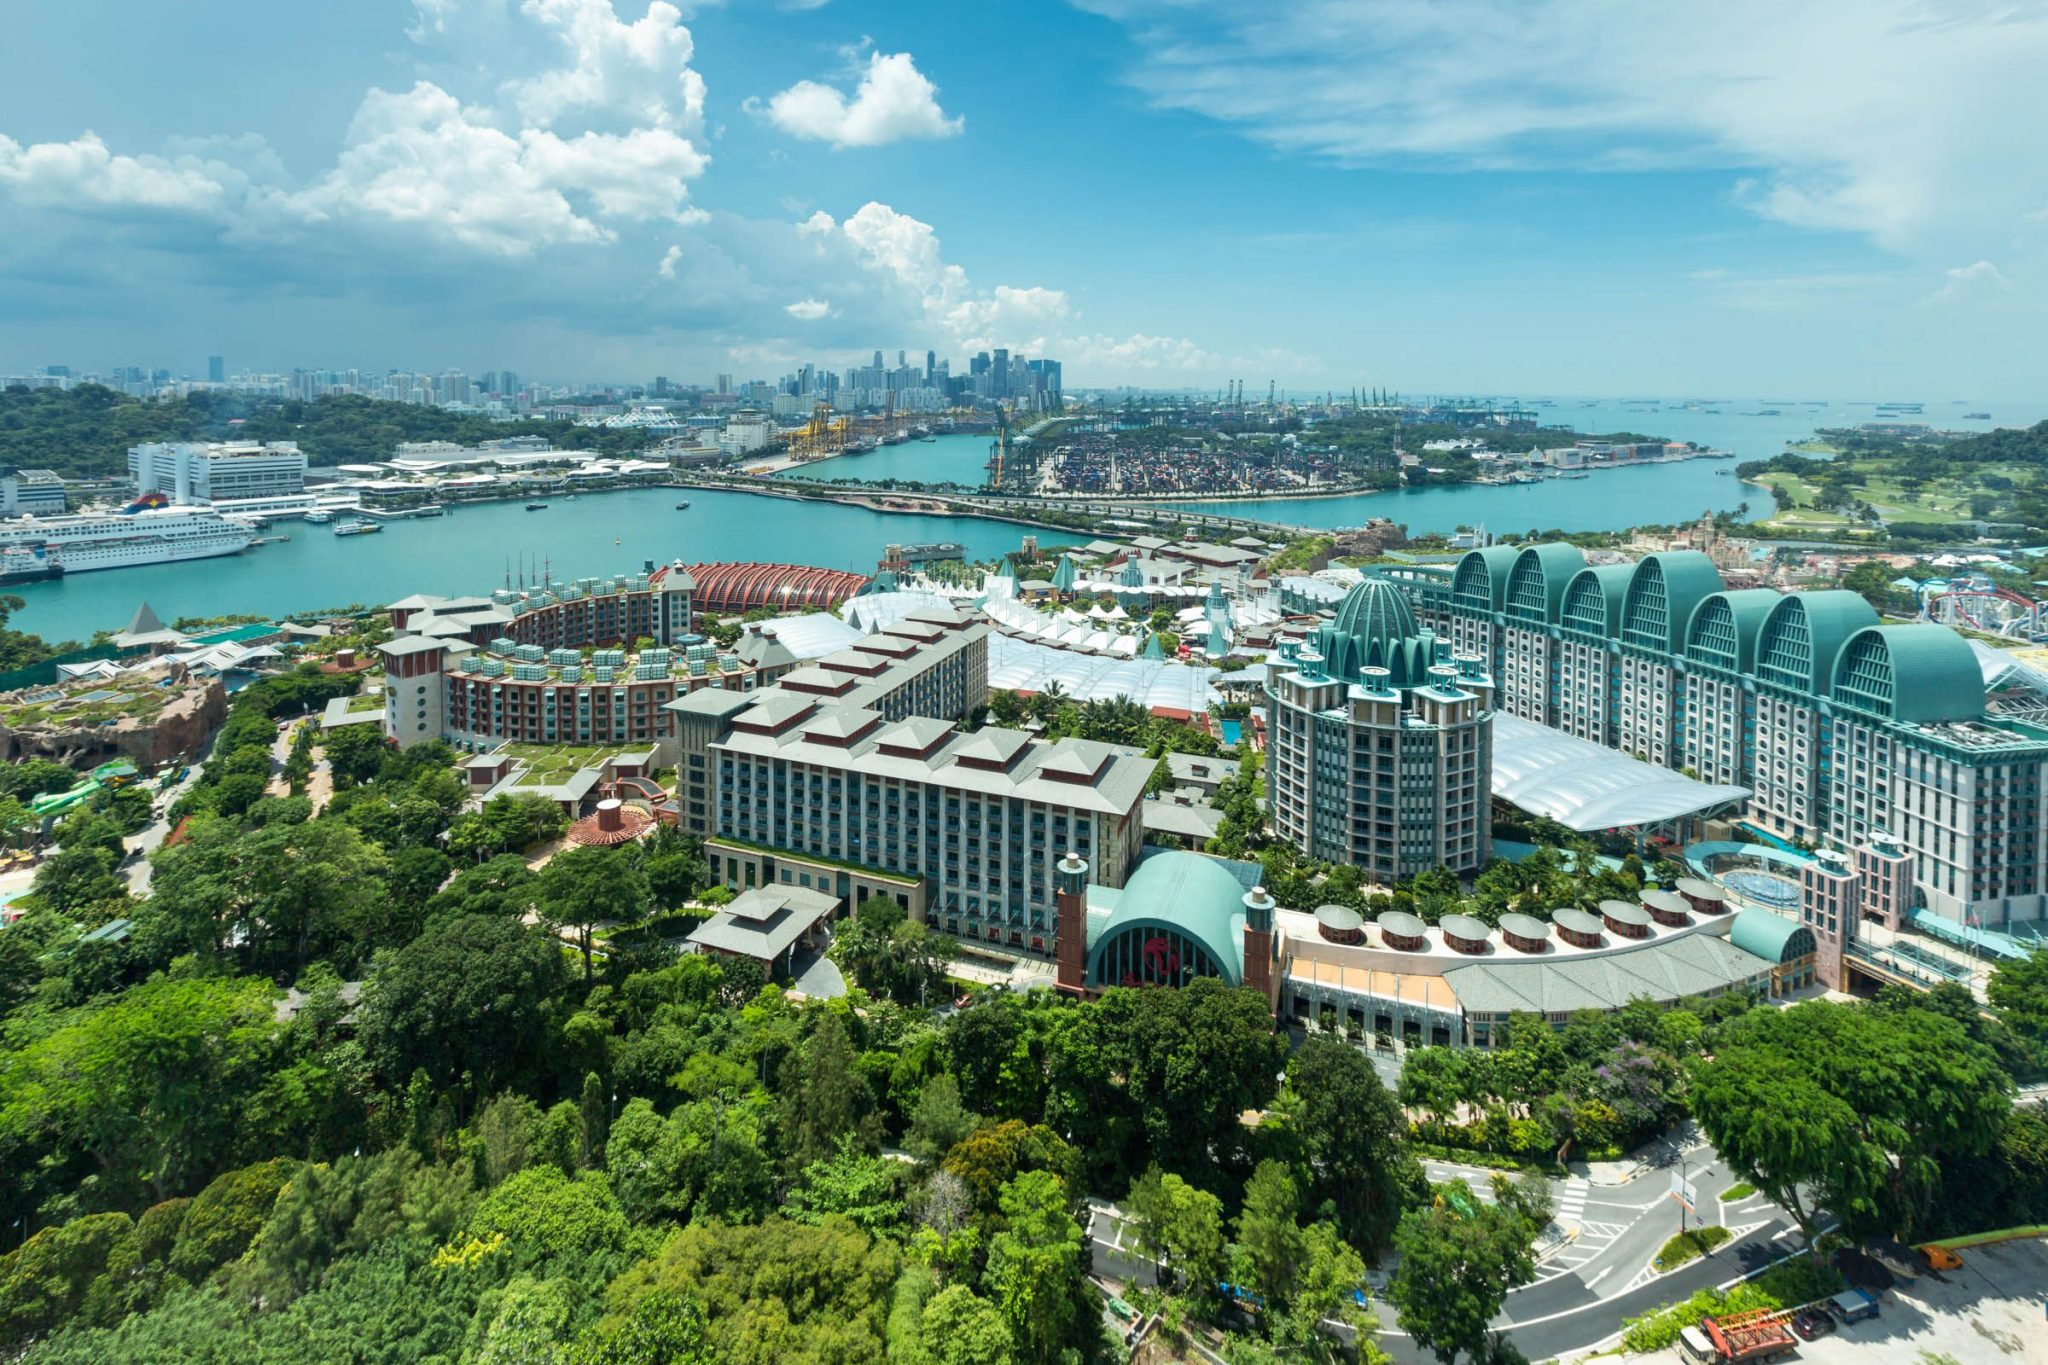 مایکل گریوز Resorts World Sentosa